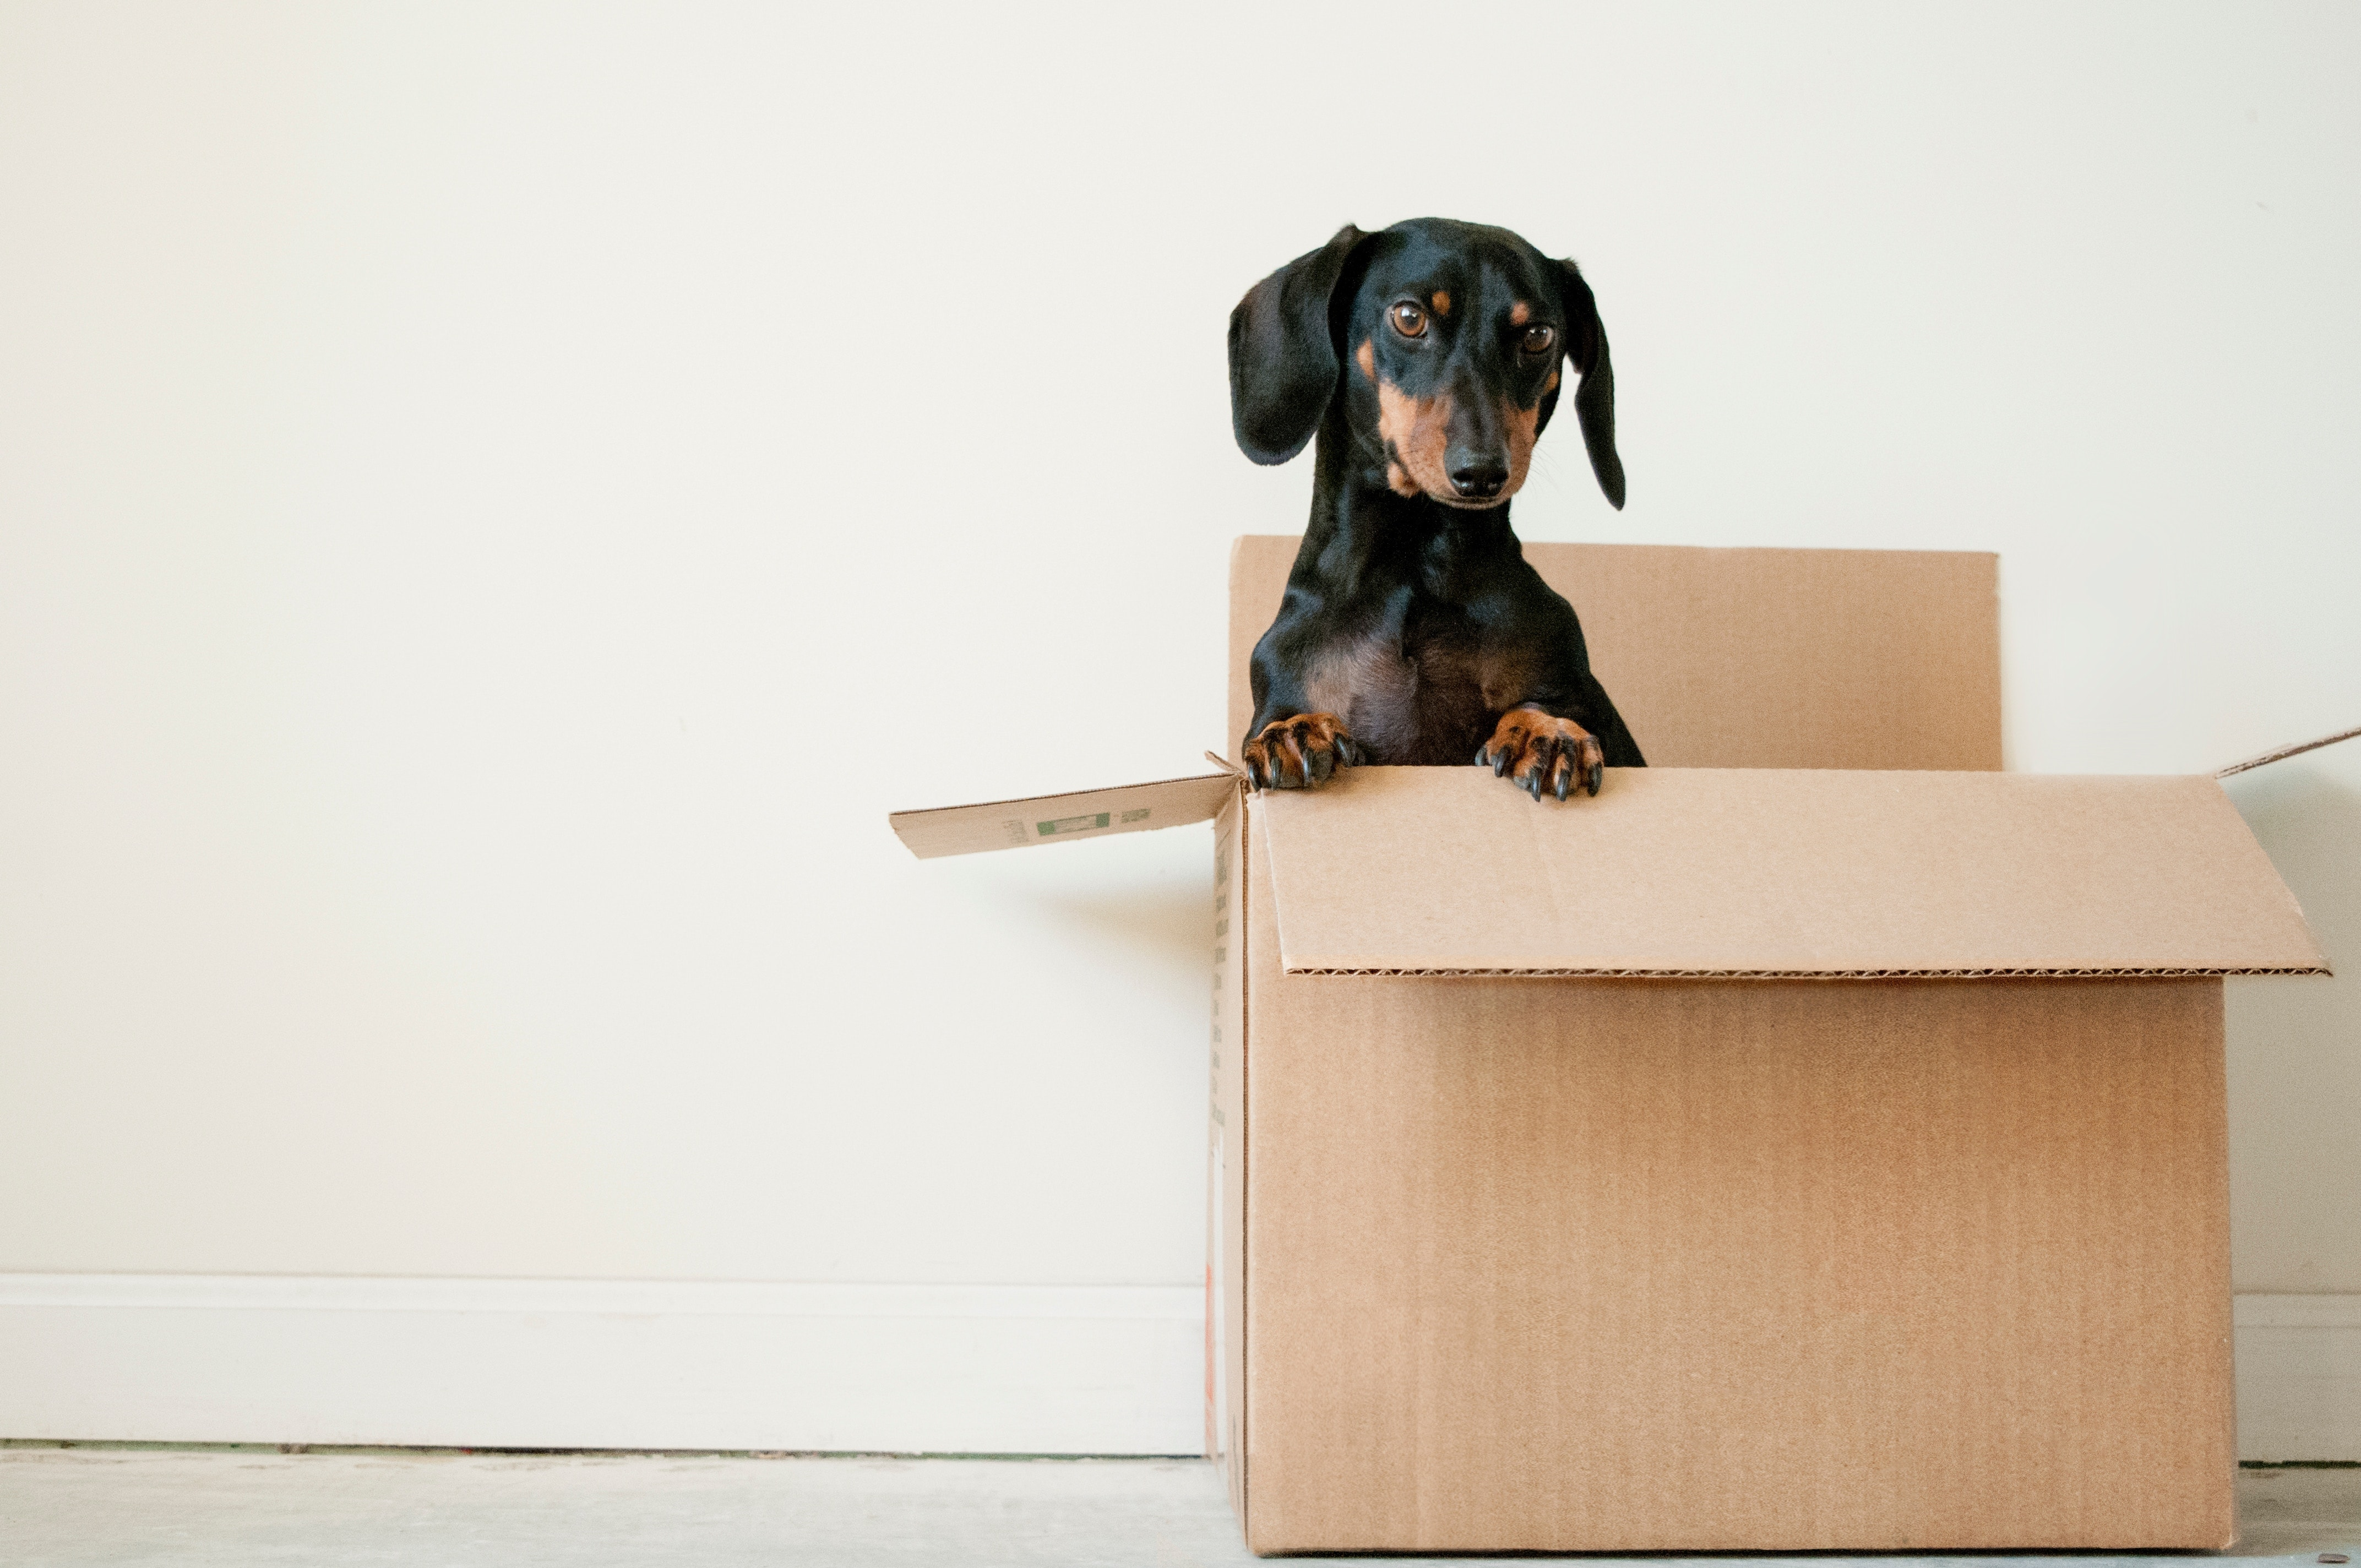 Relocating: Our Best Apartment-Hunting Tips for a Smarter Move